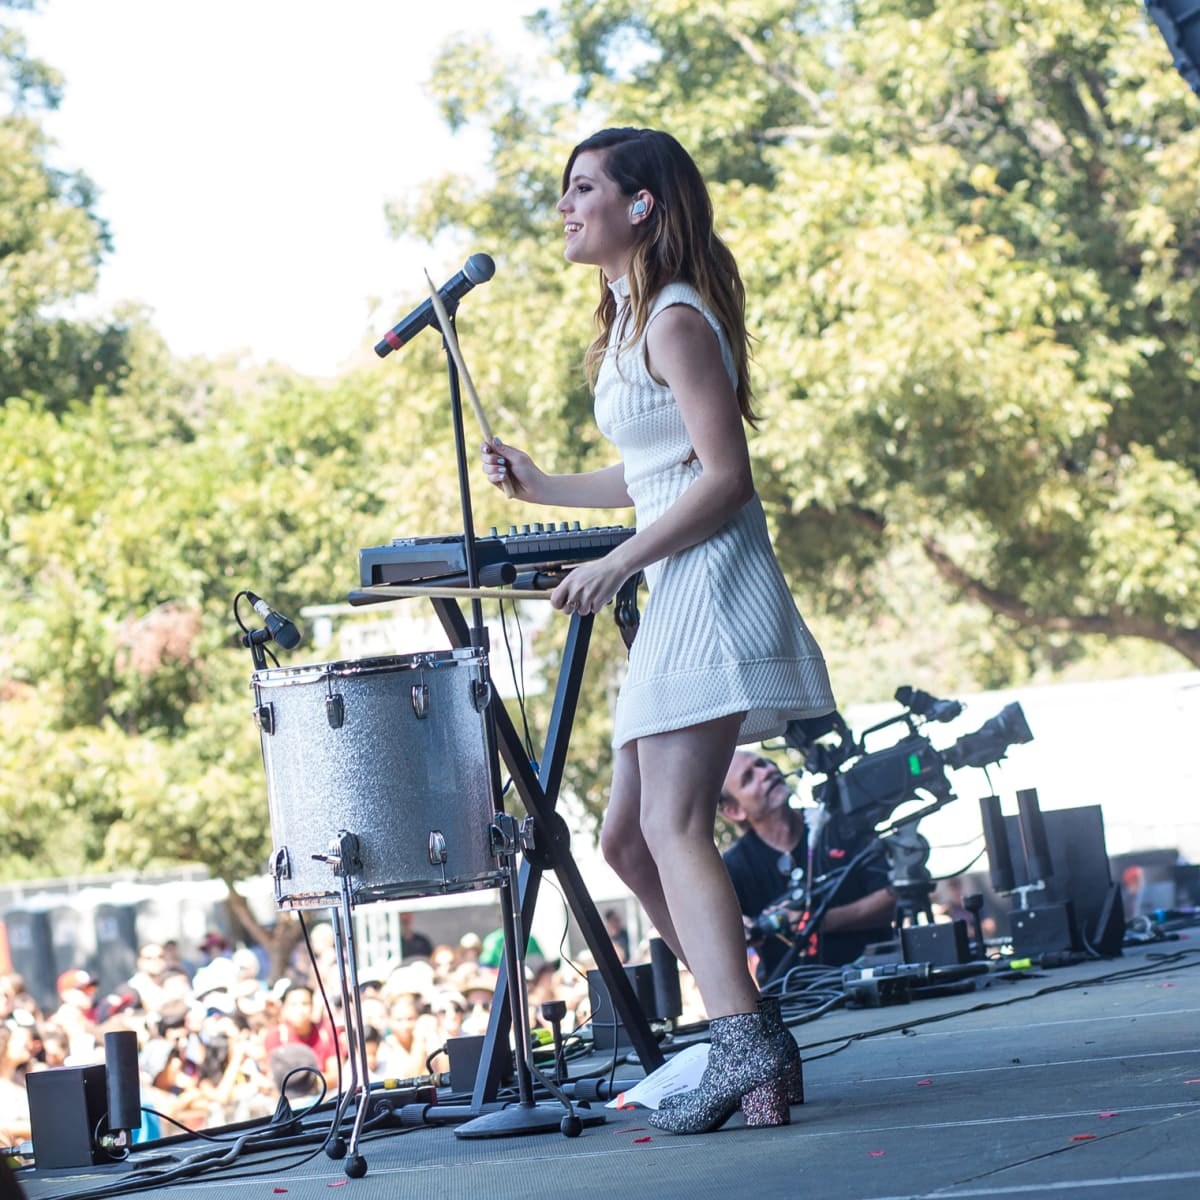 Echosmith at Austin City Limits Festival ACL 2015 Young Photographer Ryder Blue Cavazos